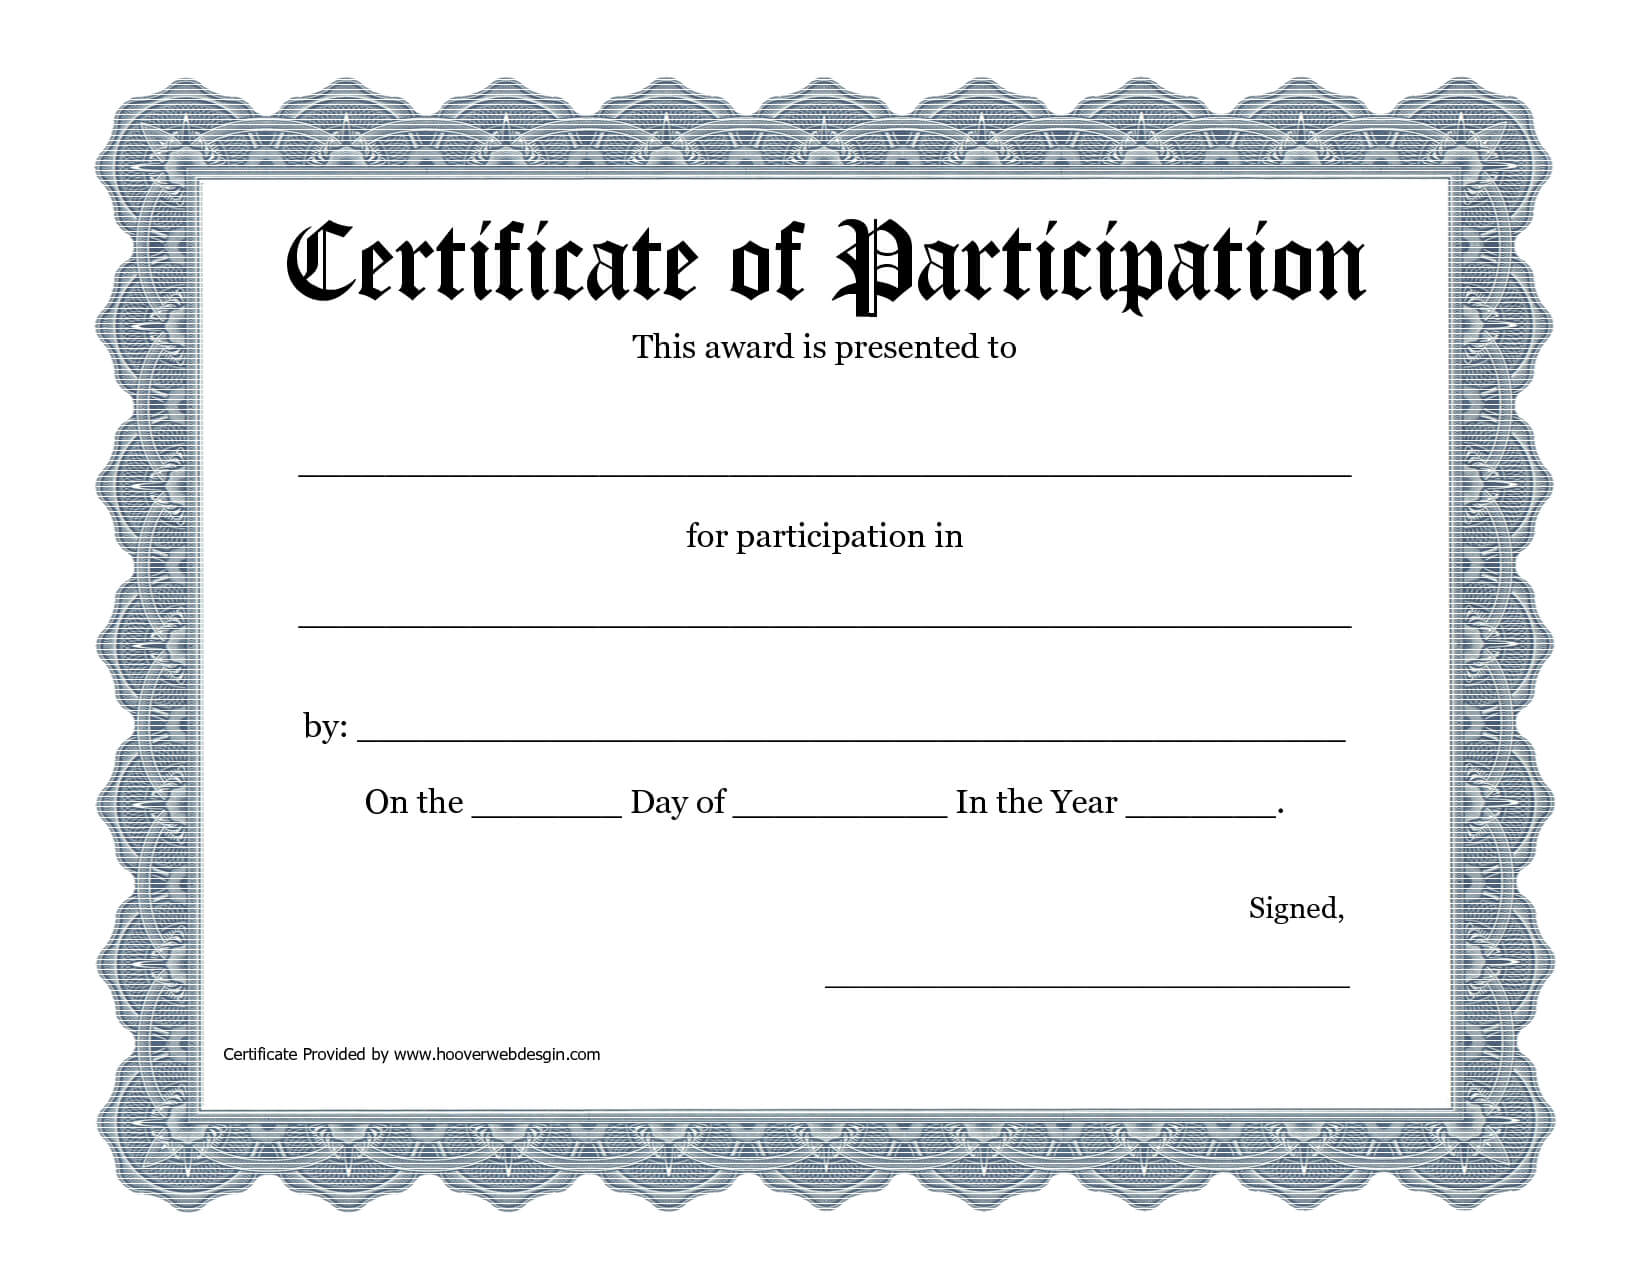 Free Printable Award Certificate Template - Bing Images With Certification Of Participation Free Template